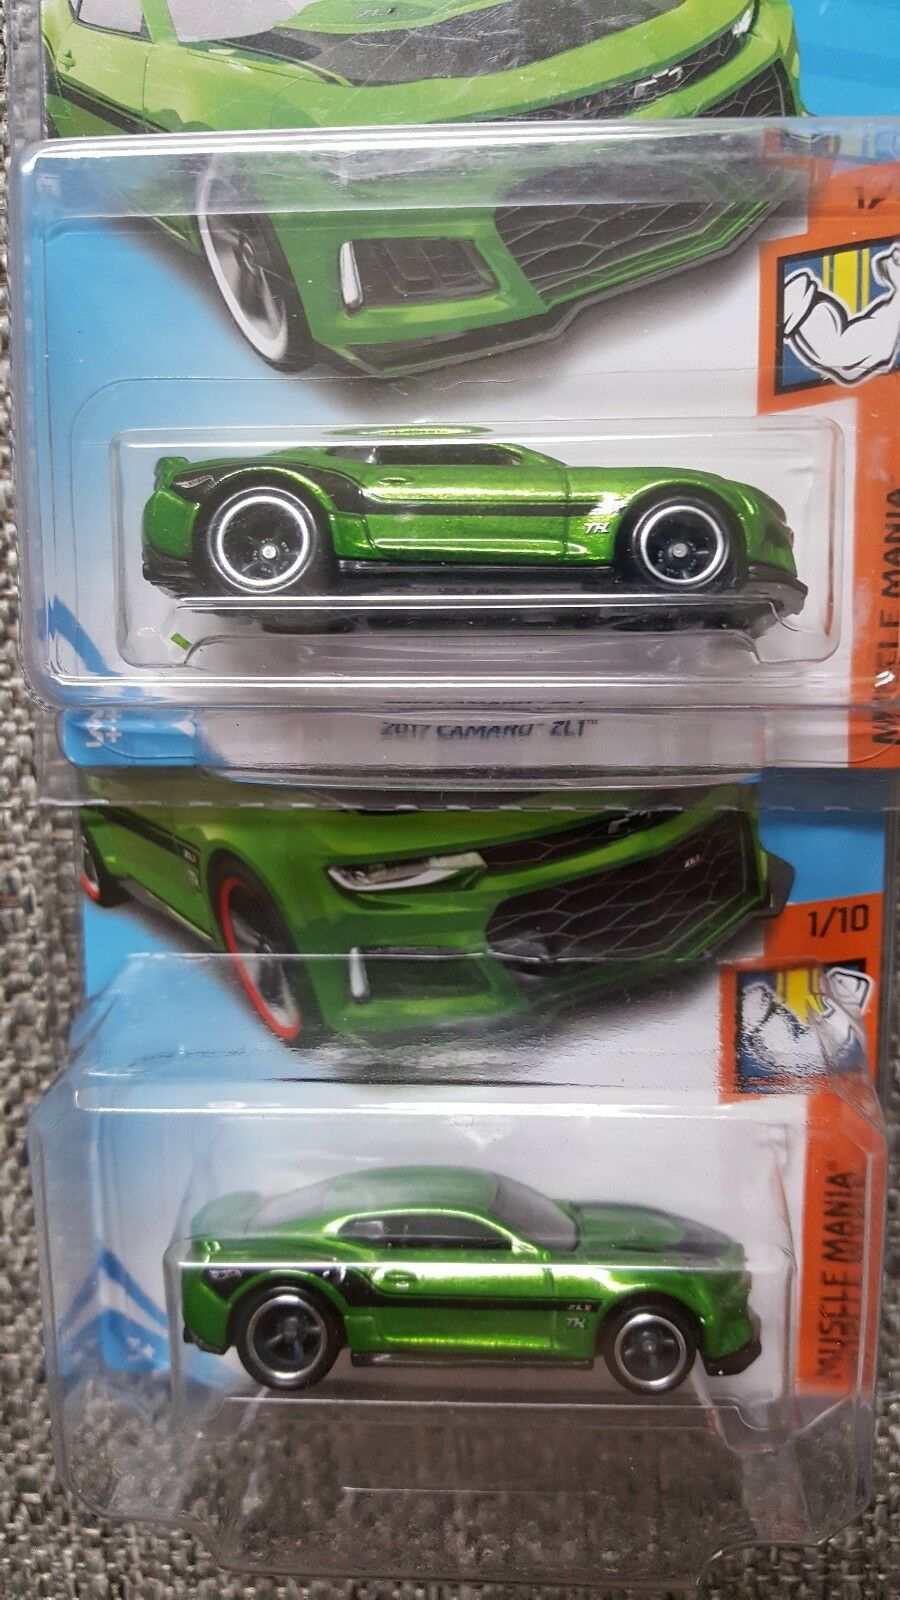 HOT Wtalons CAMARO ZL1 SUPER TREASURE HUNT rouge RIM  AND REGULAR RIM voitureD VARIATION  mieux acheter